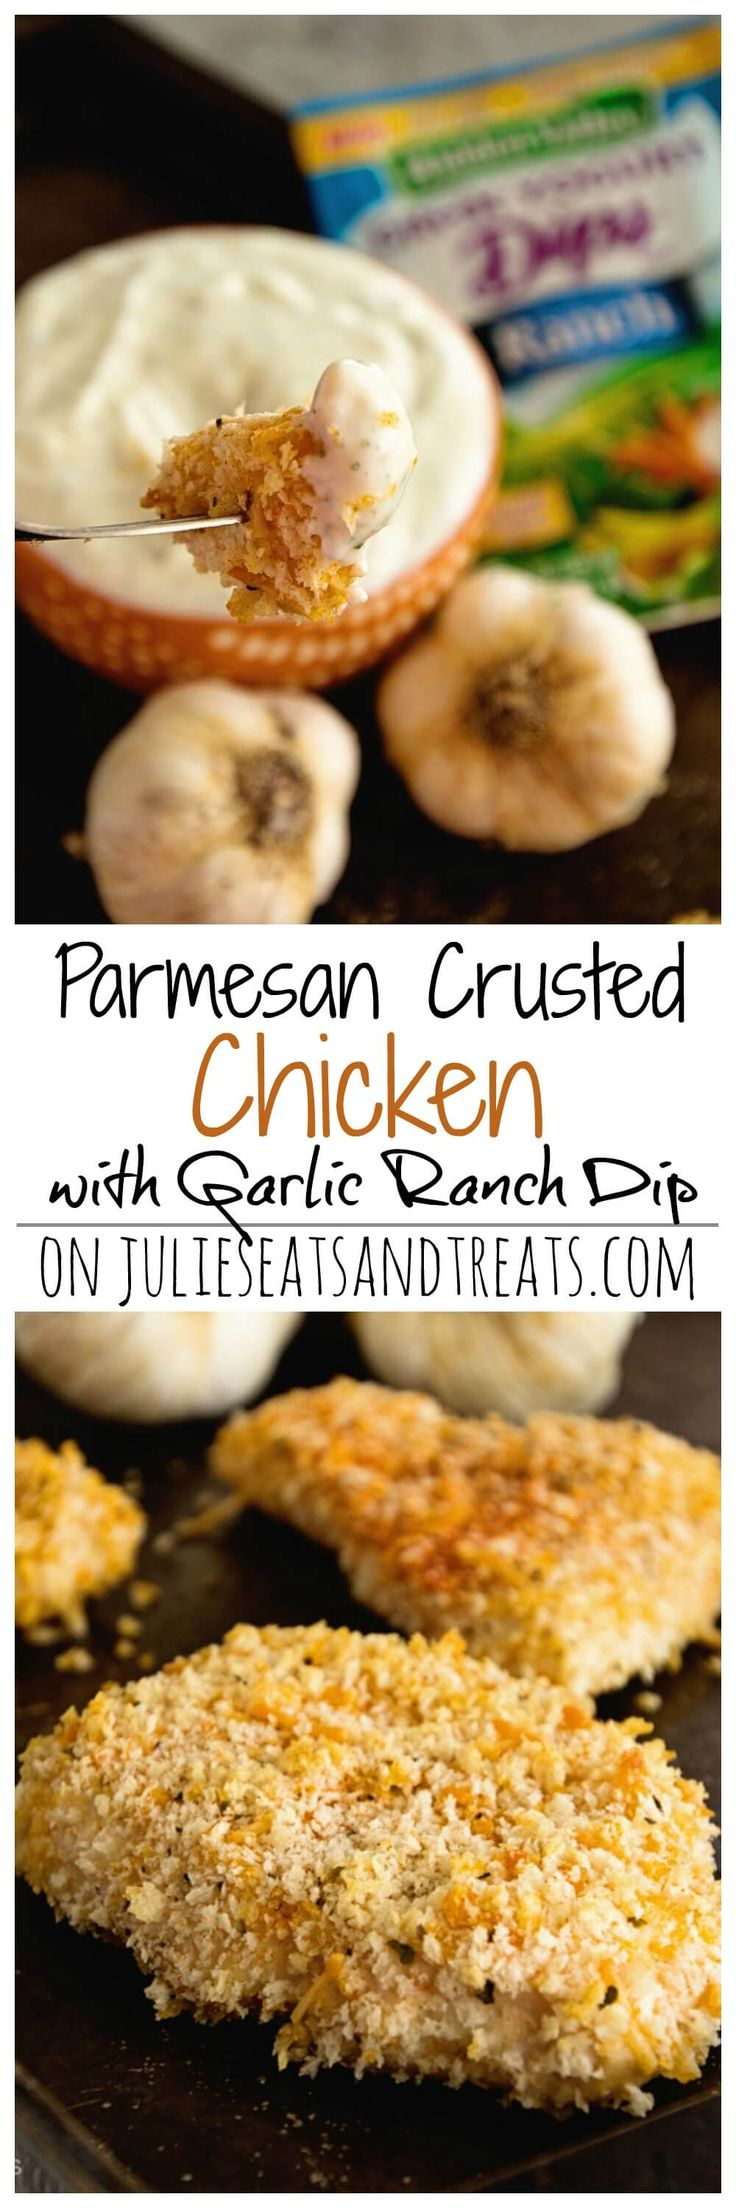 Parmesan Chicken with Creamy Garlic Ranch Dip ~ Crunchy Chicken coated in Panko and Parmesan Cheese and Homemade Creamy Garlic Ranch Dip! Perfect for a Quick & Easy Meal! ~ http://www.julieseatsandtreats.com